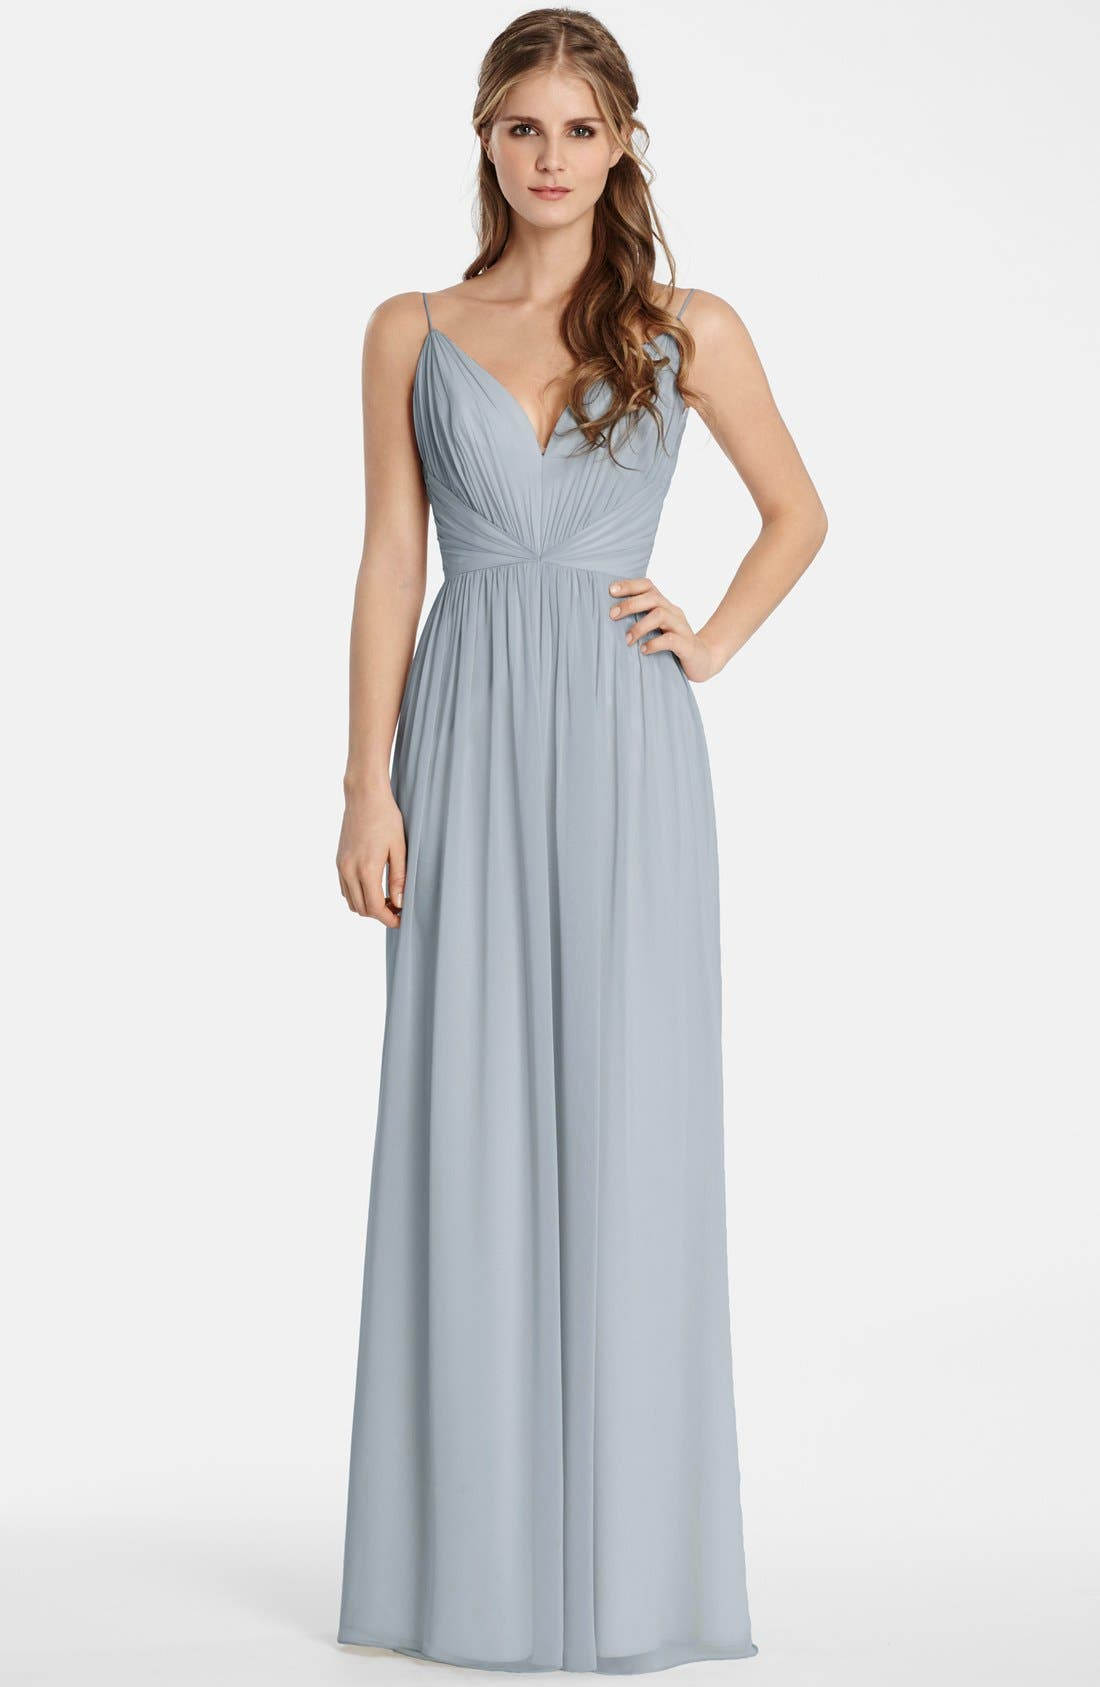 Main Image - Jim Hjelm Occasions Draped V-Neck Chiffon Gown